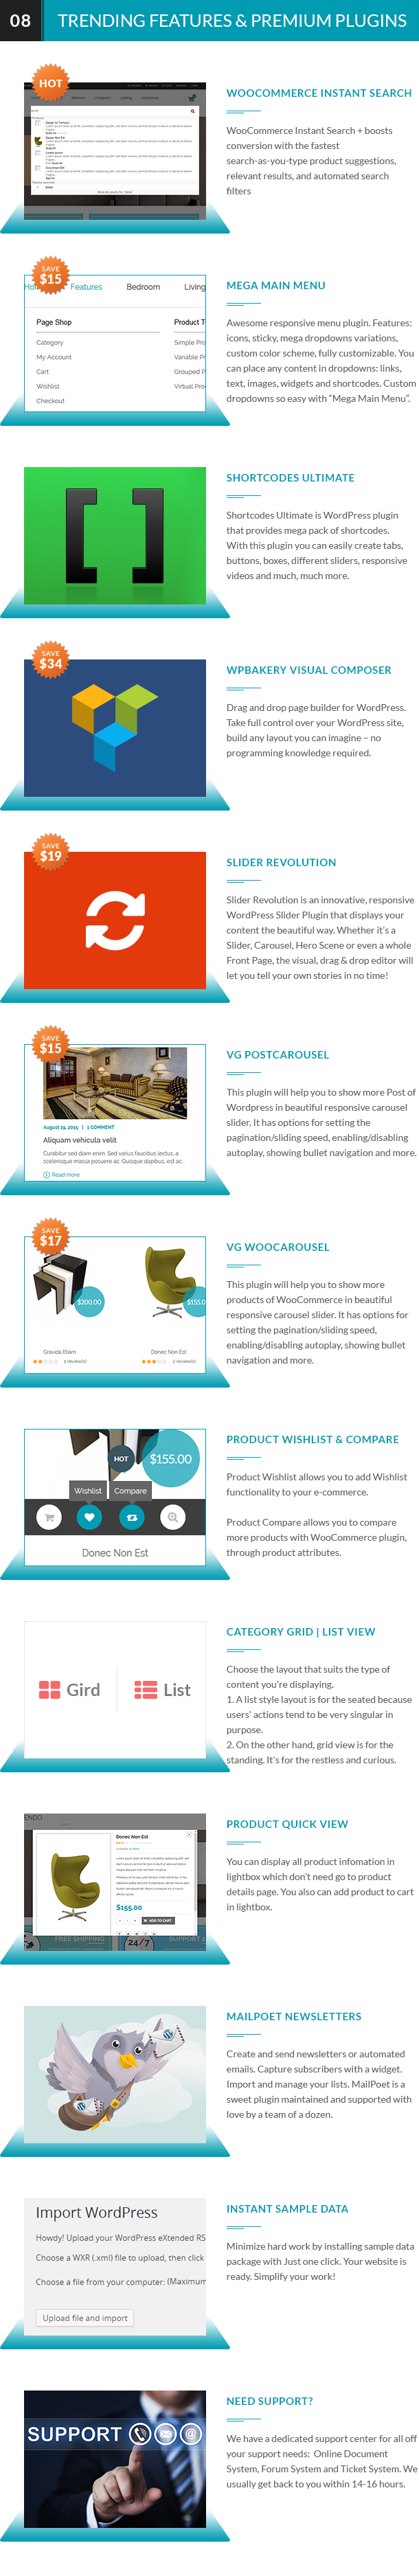 VG Cendo - WooCommerce WordPress Theme for Furniture Stores - 28